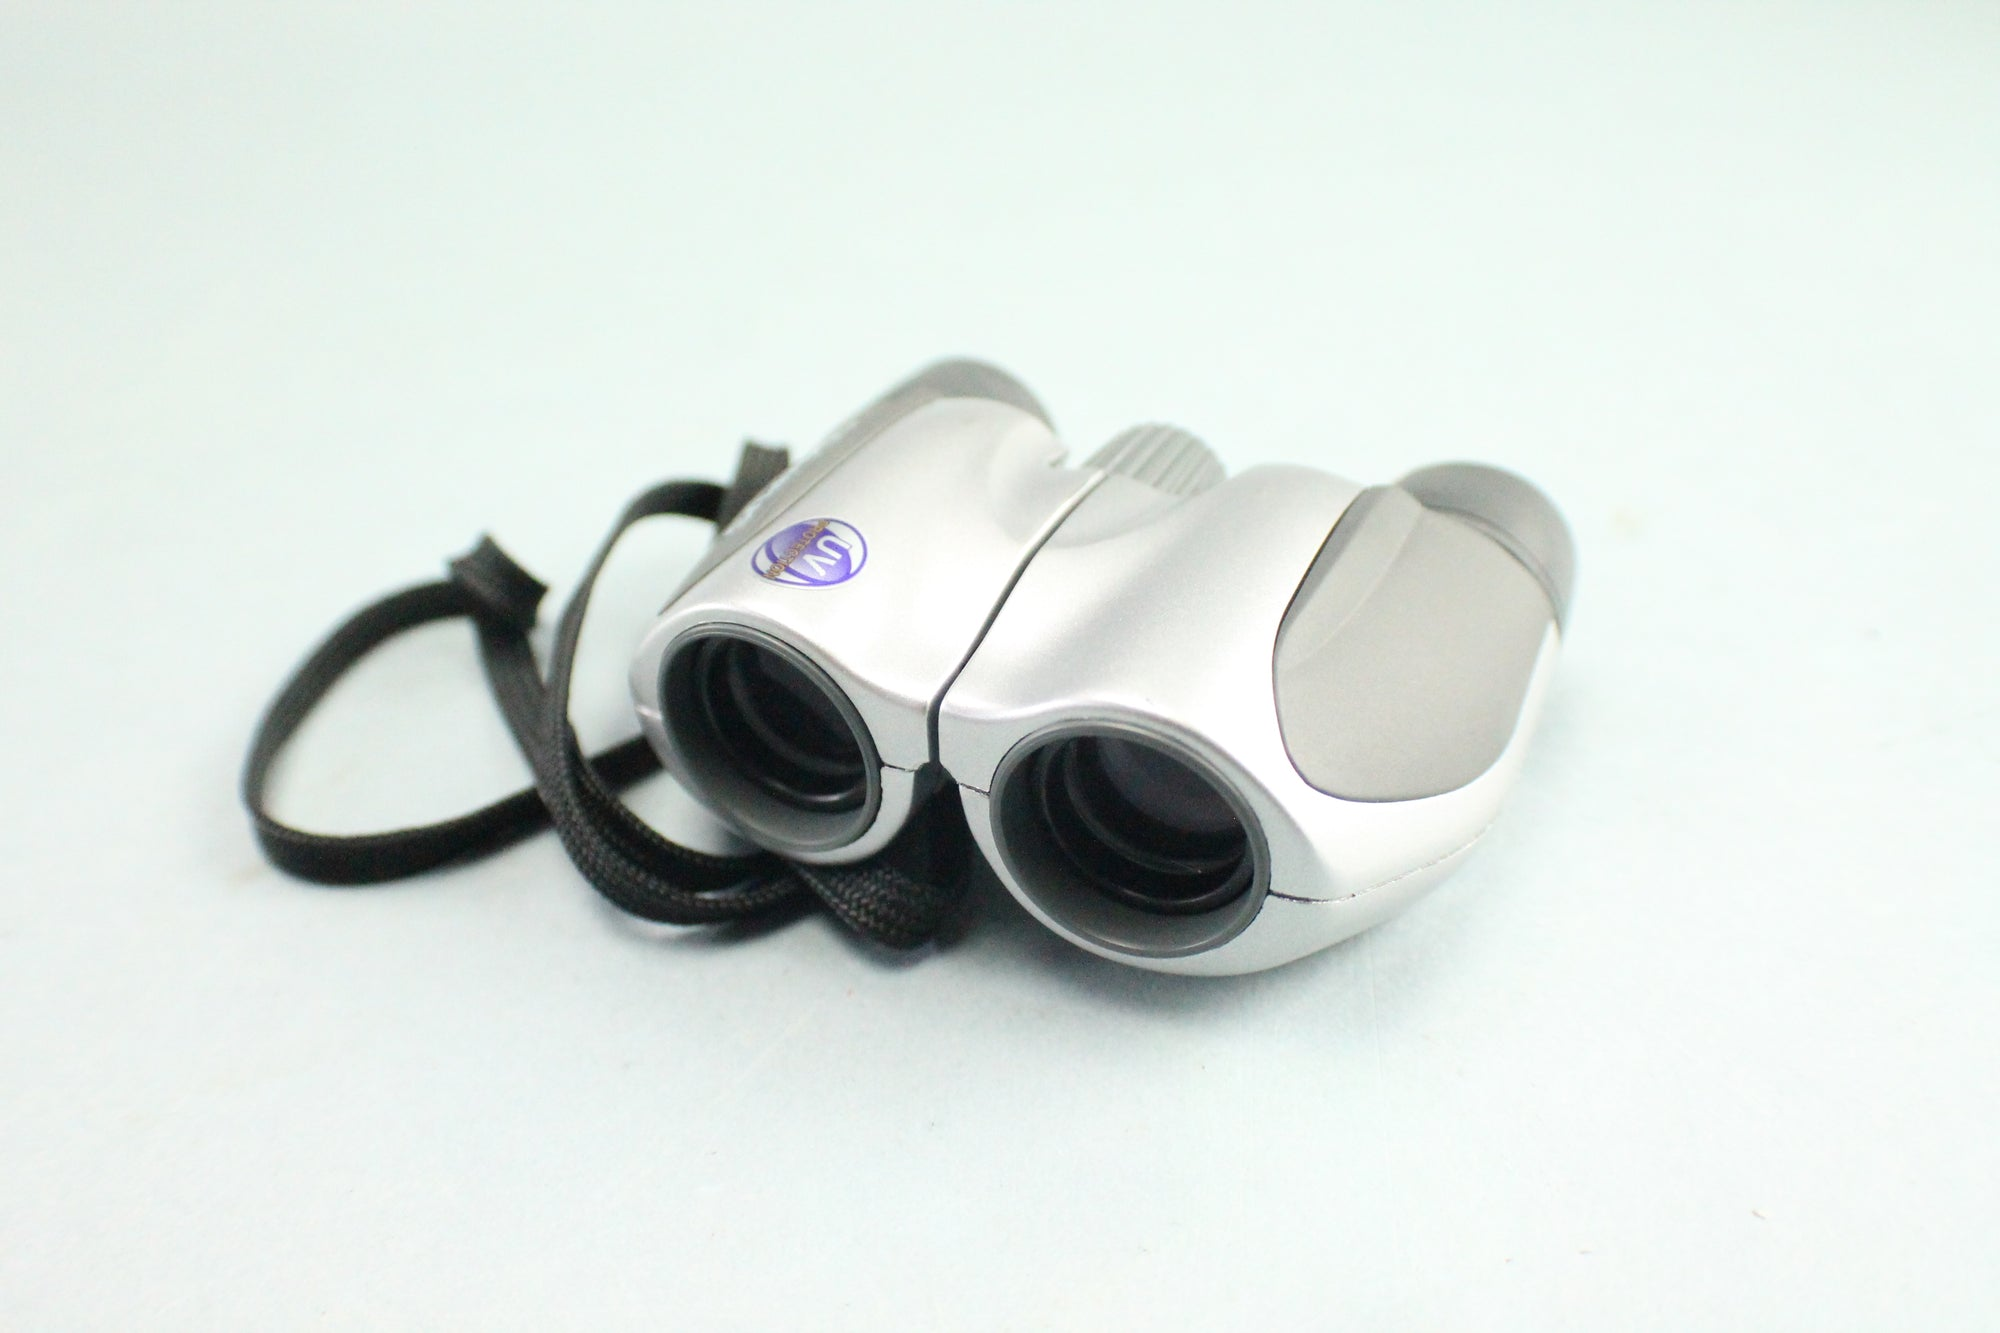 Olympus Compact Binoculars 8x21 DPC I Field 6.4 with Case